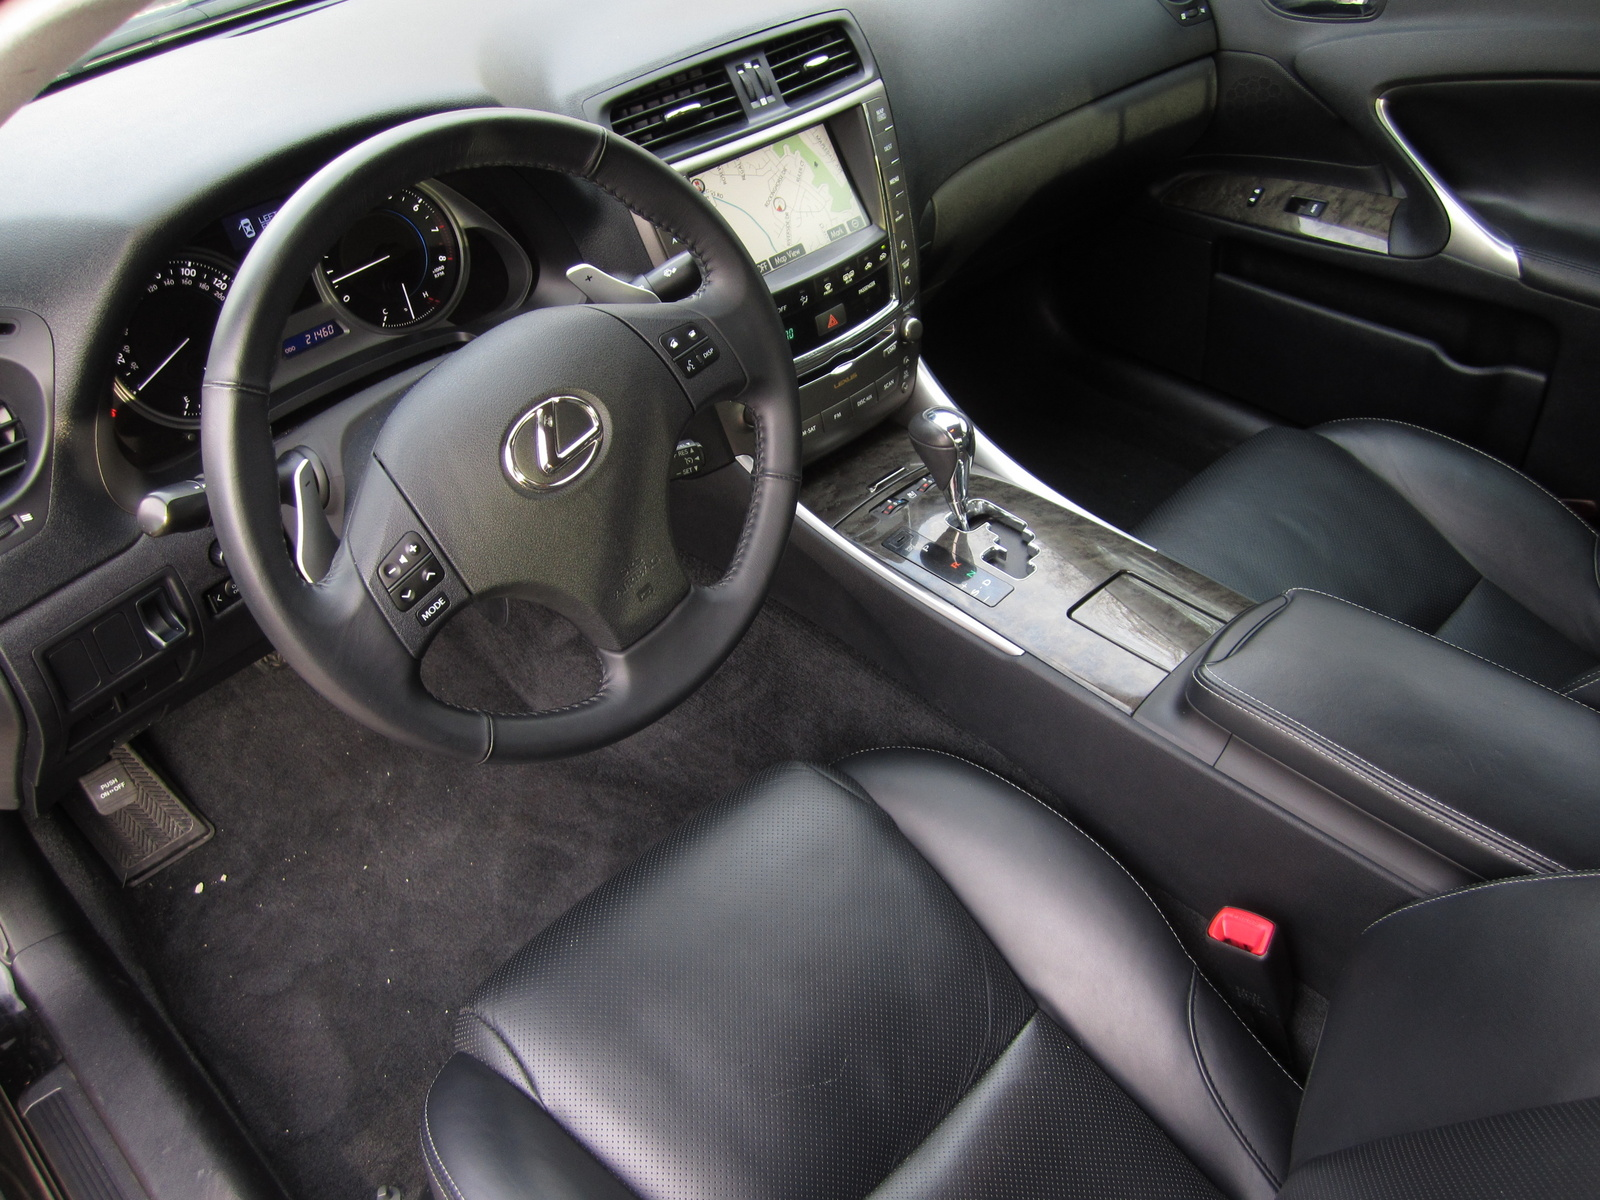 2009 lexus is 250 interior pictures cargurus. Black Bedroom Furniture Sets. Home Design Ideas